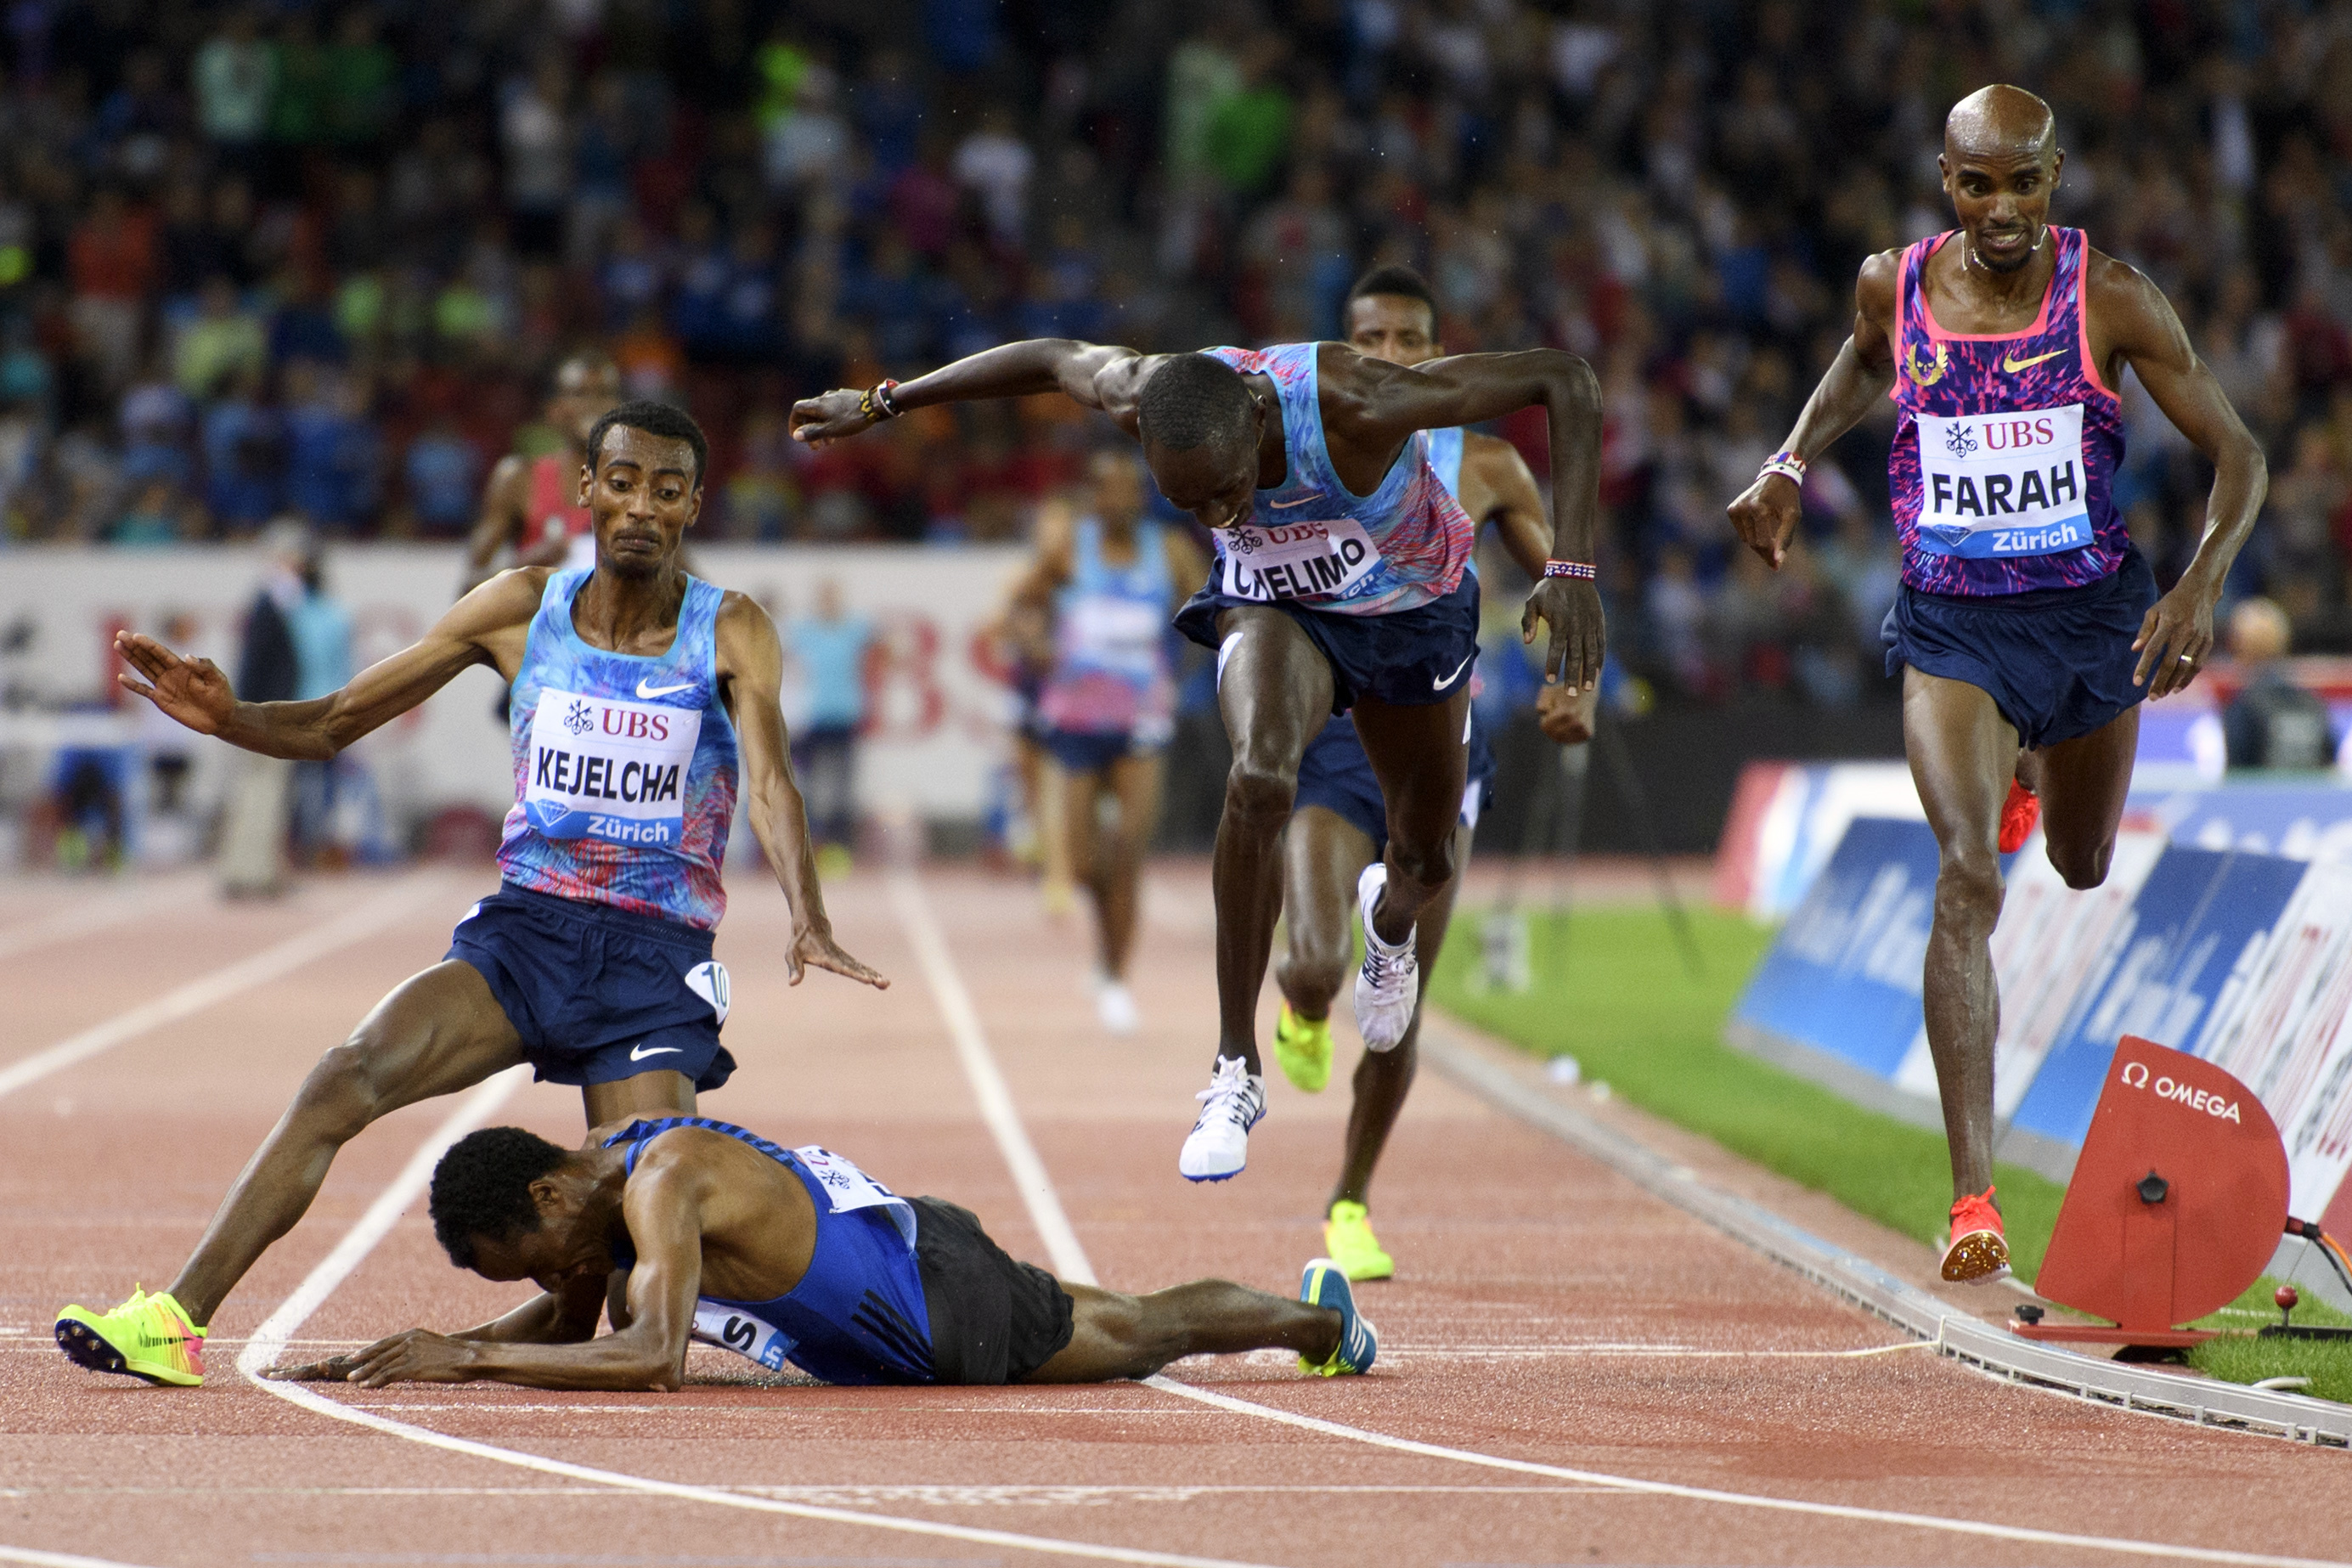 Mo Farah of Britain, right, crosses the finish line to win the Men's 5000m followed by second placed Paul Chelimo of United States, center right, and the falling Muktar Edris of Ethiopia, on the ground, during the Weltklasse IAAF Diamond League internatio